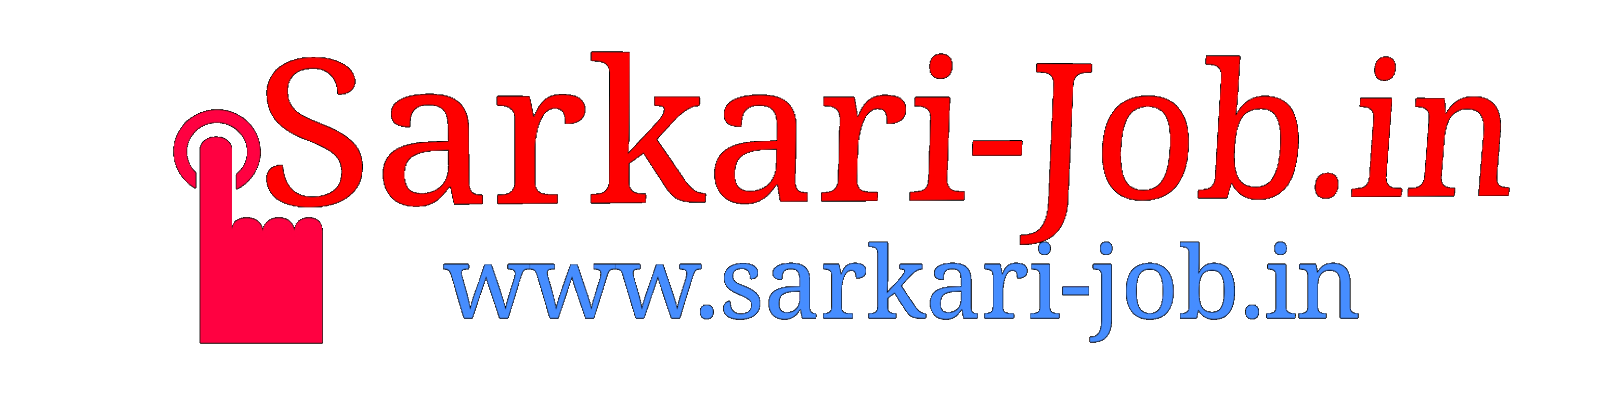 Sarkari Job - Provide Letest Sarkari Job And Sarkari Result